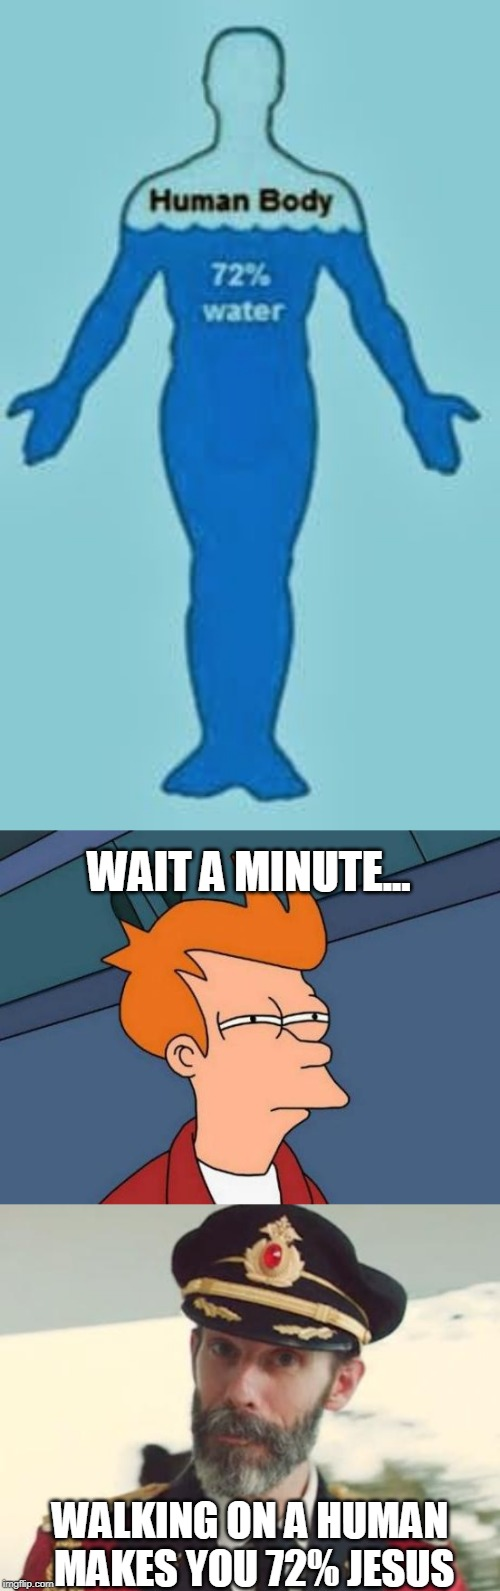 WE CAN ALL BE 72% JESUS TOGETHER!!! | WAIT A MINUTE... WALKING ON A HUMAN MAKES YOU 72% JESUS | image tagged in memes,futurama fry,captain obvious,walking on a human,humans are 72 percent water | made w/ Imgflip meme maker